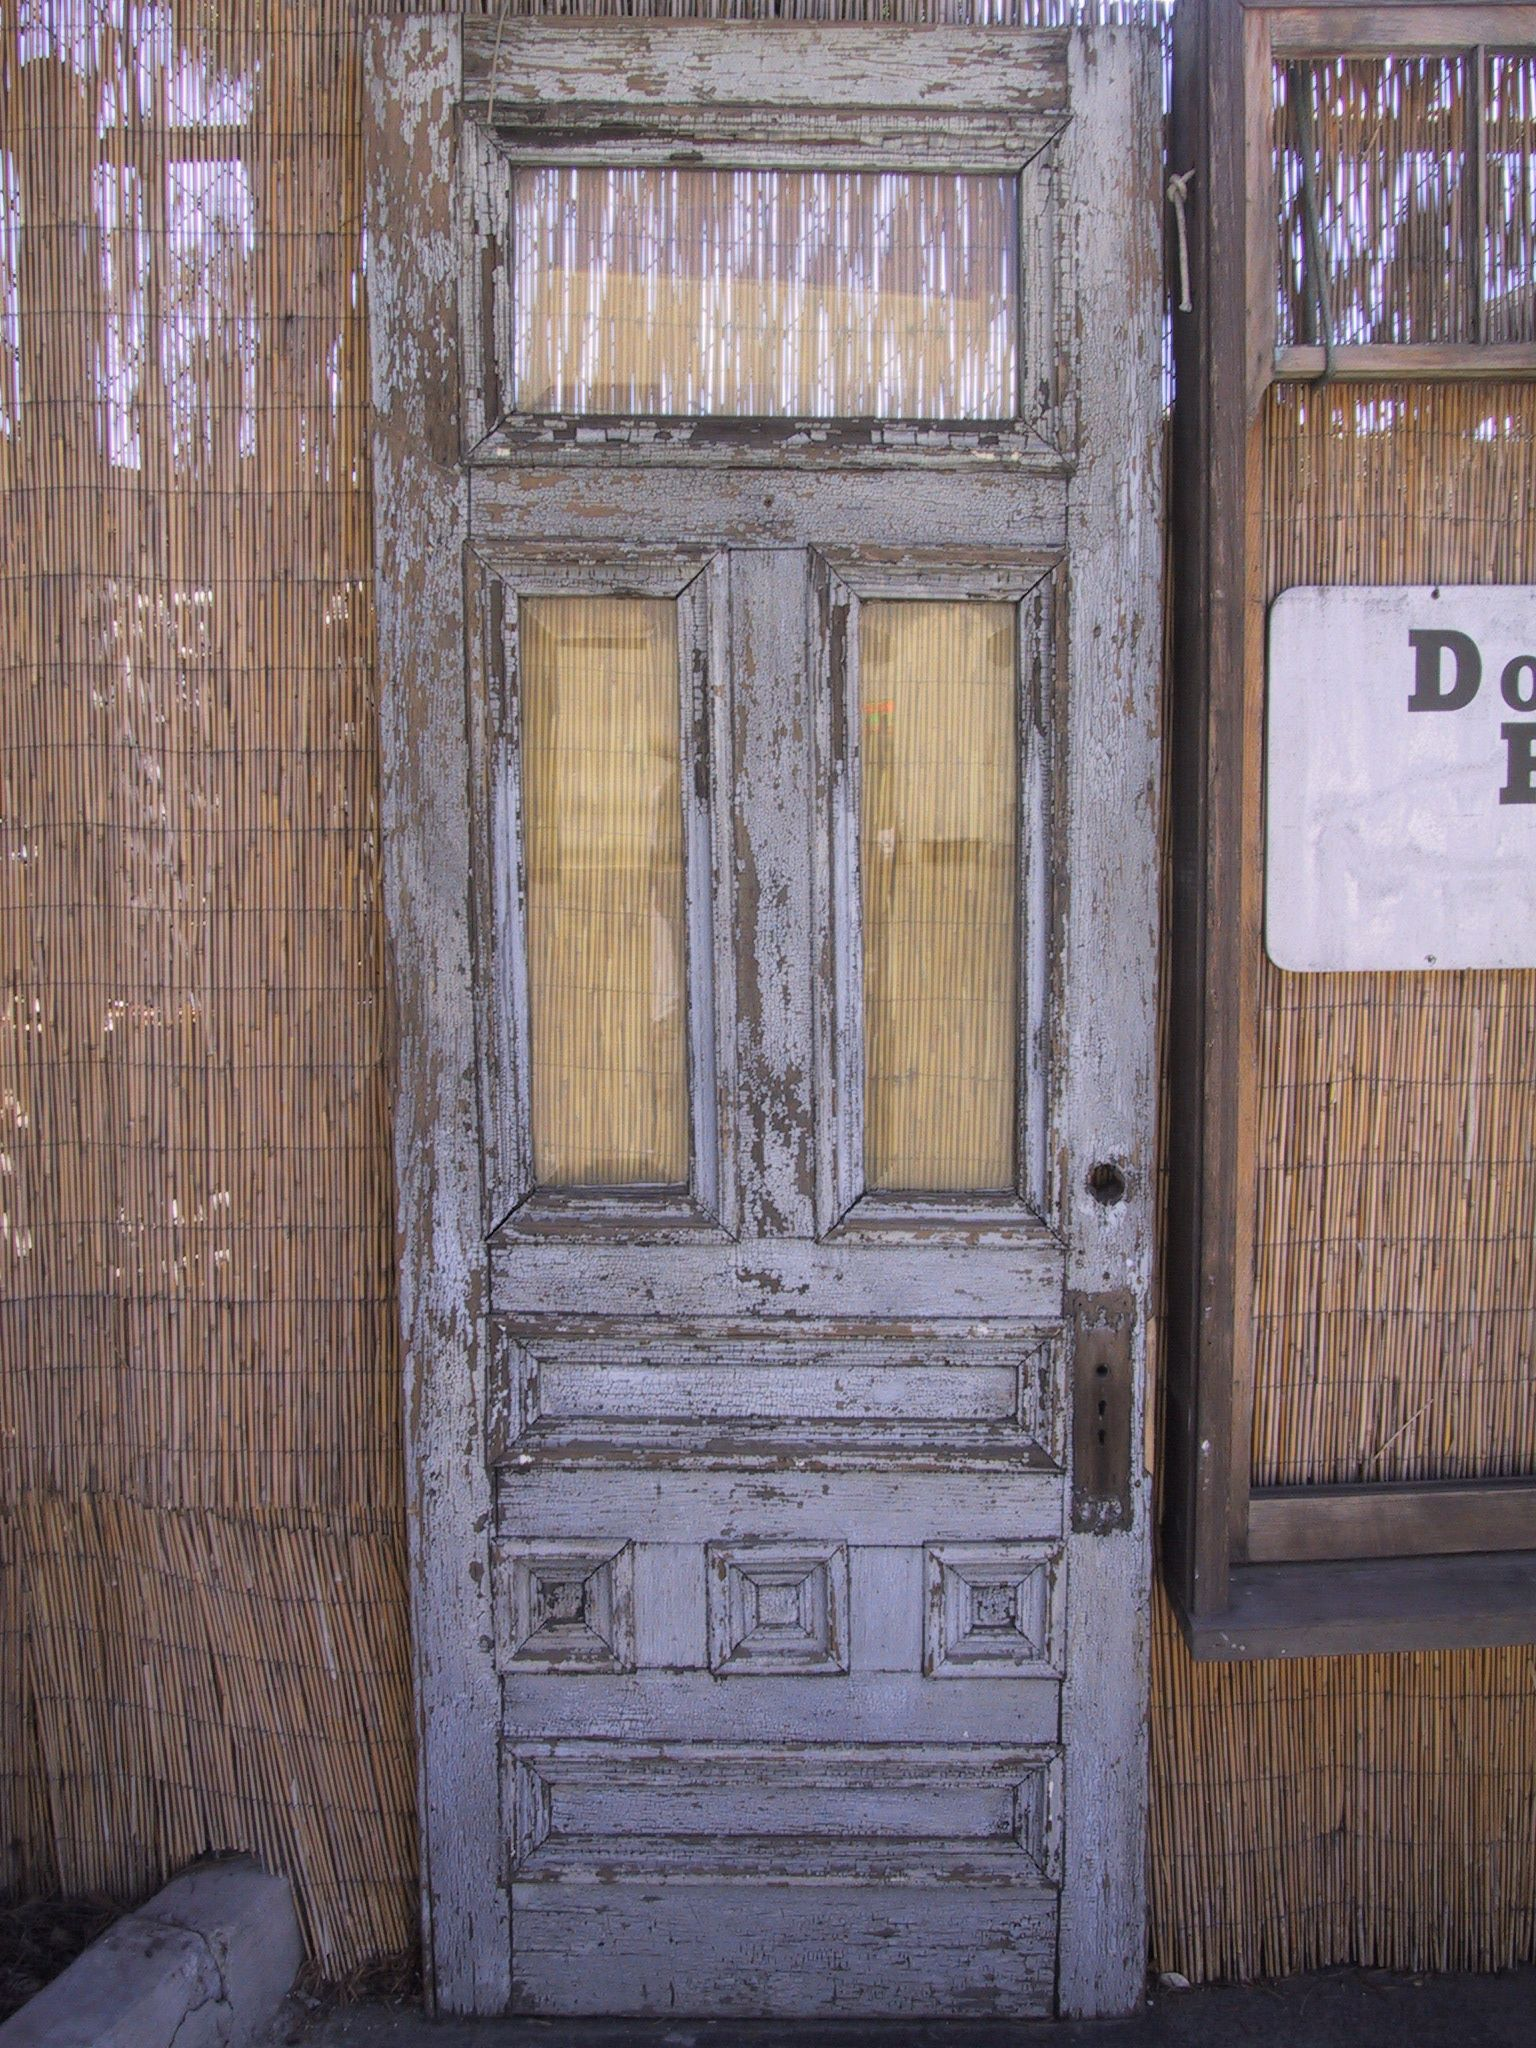 old french windows and doors | here are some cool old doors for sale | - Here Are Some Cool Old Doors For Sale Doors*Windows*Iron